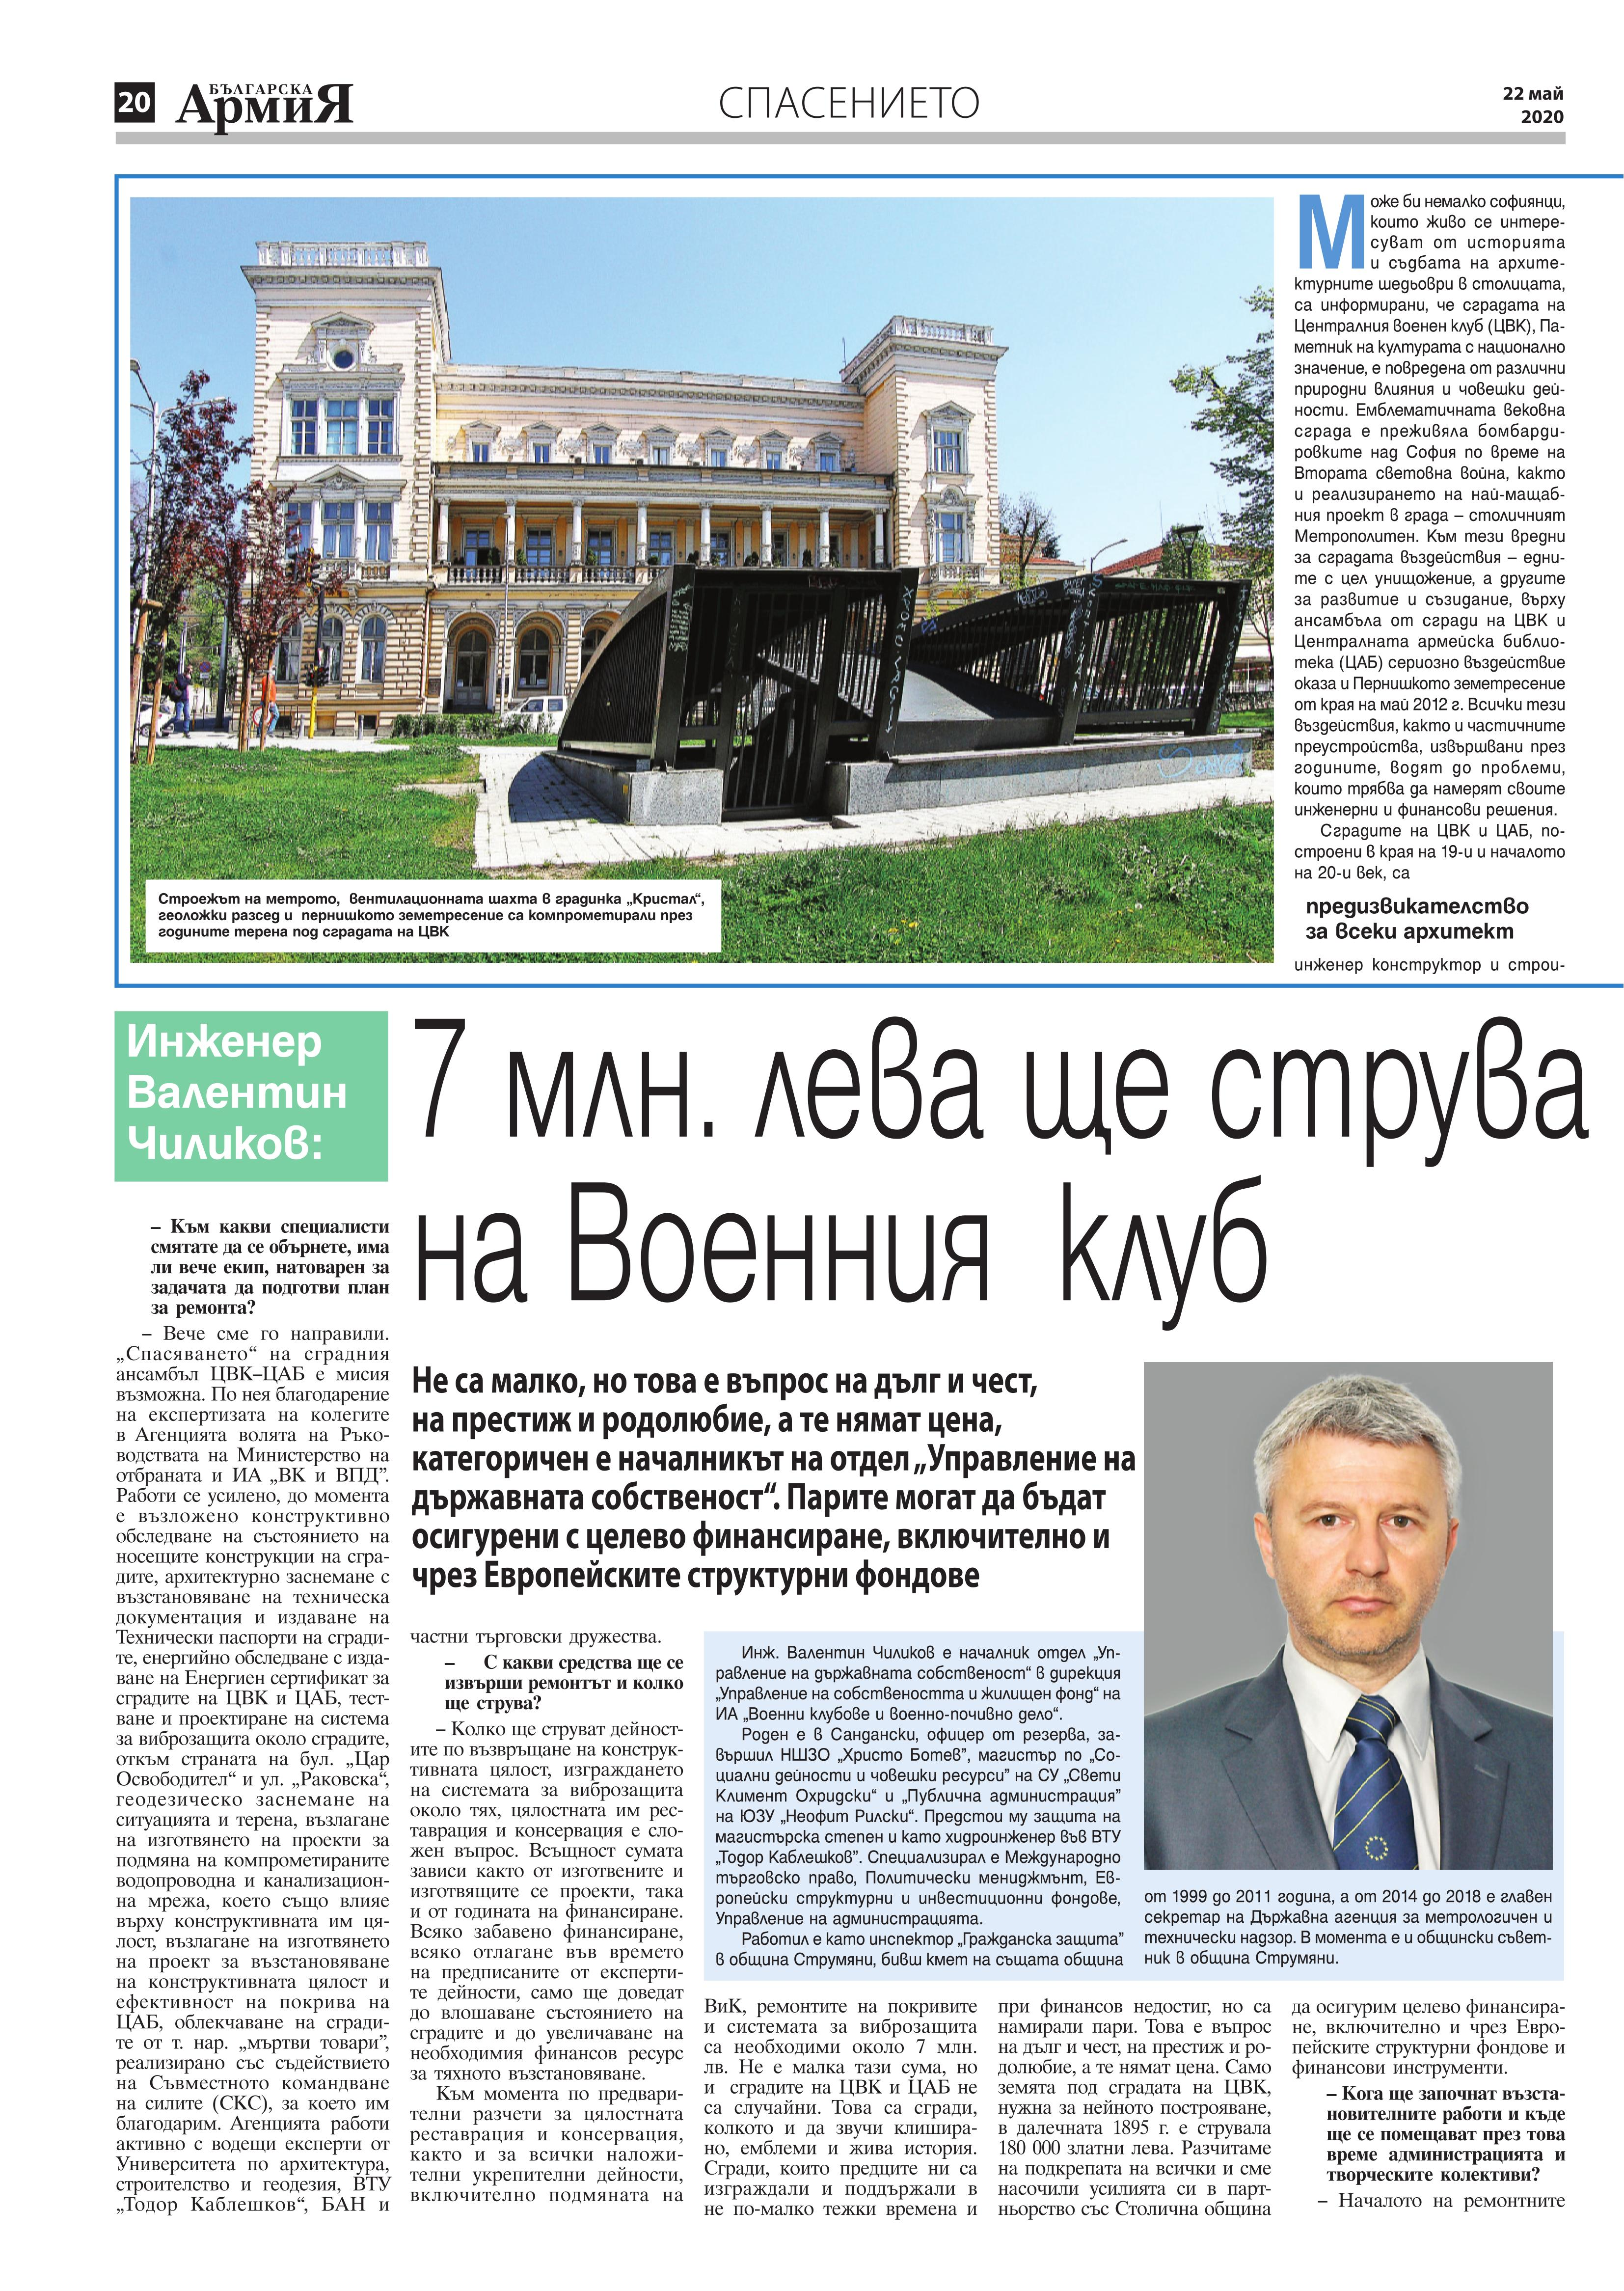 https://www.armymedia.bg/wp-content/uploads/2015/06/20.page1_-140.jpg